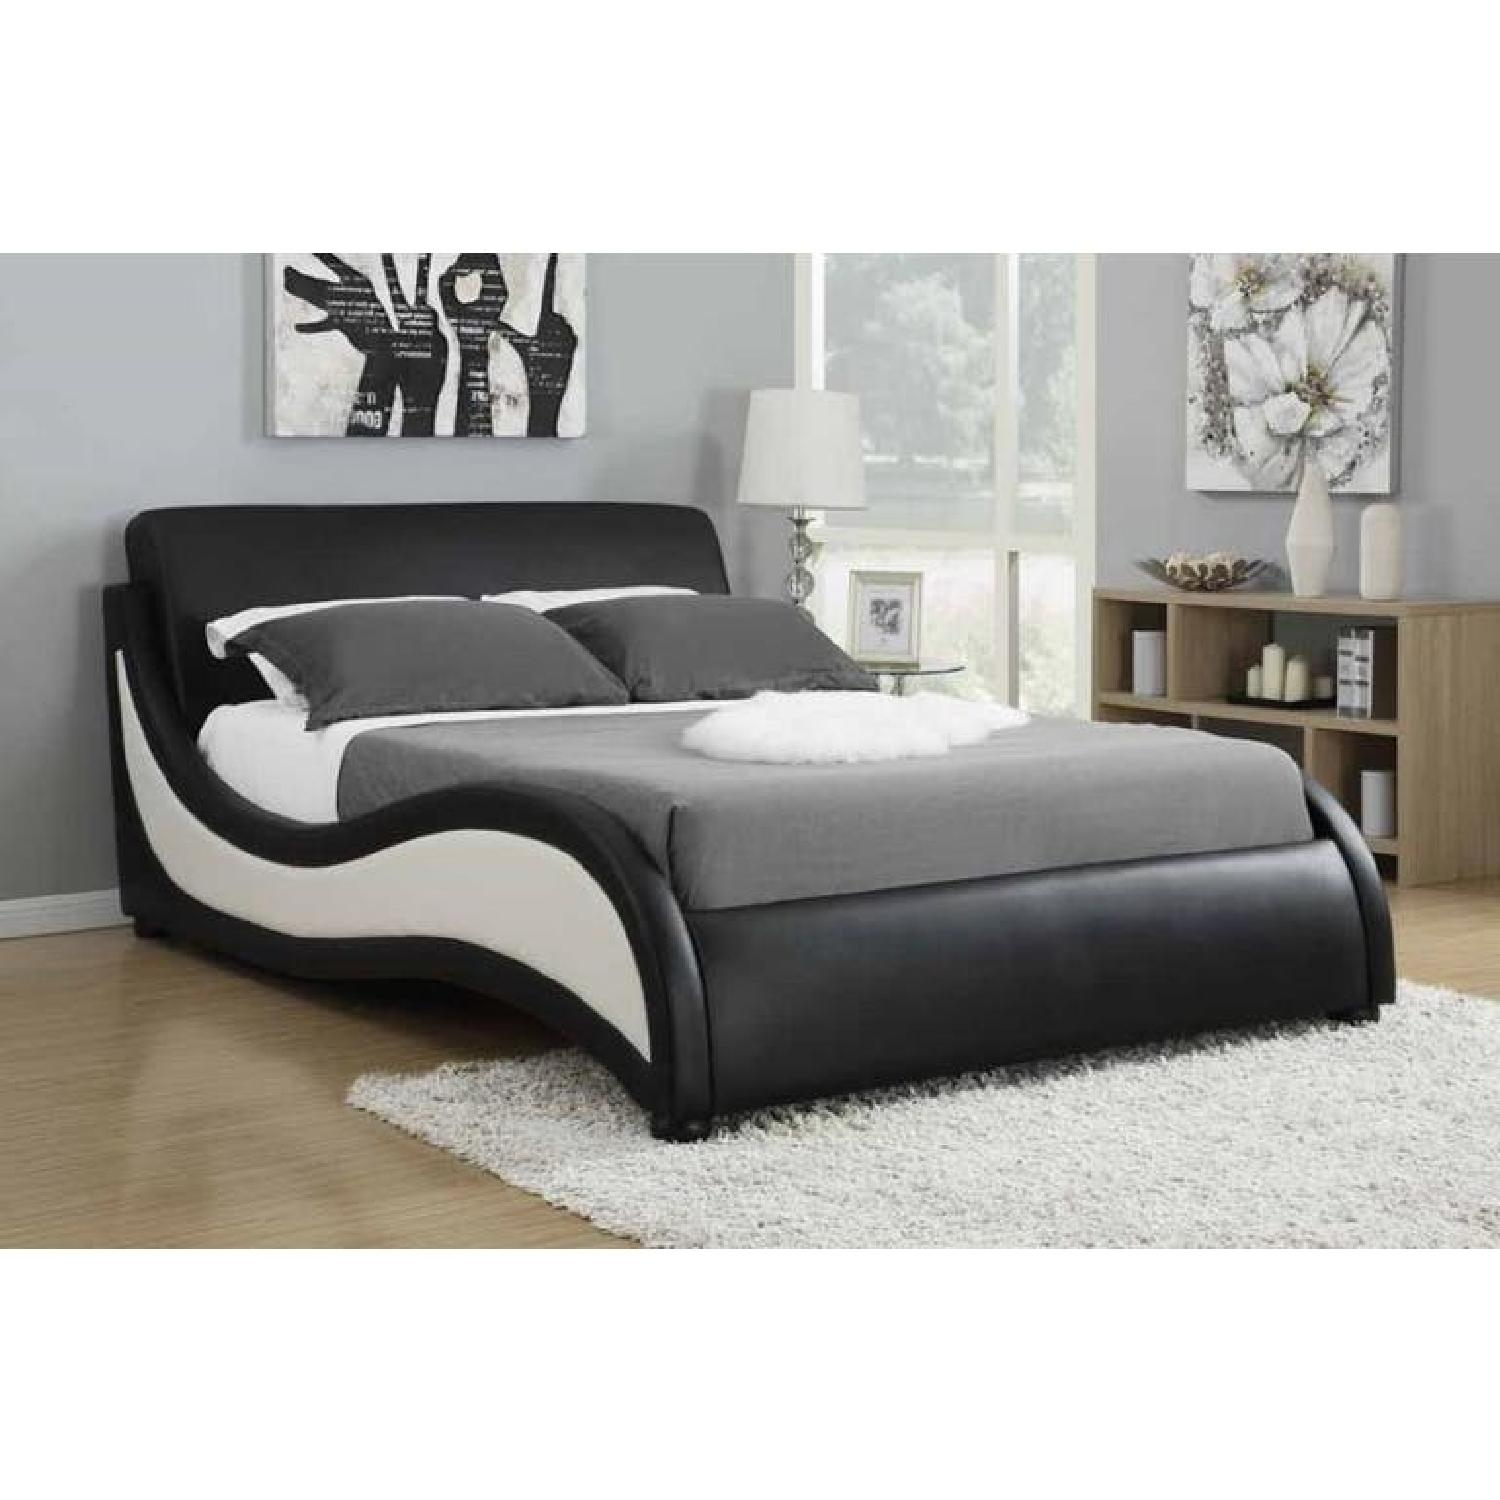 Modern 2-Tone King Size Bed w/ Space Age Design-0